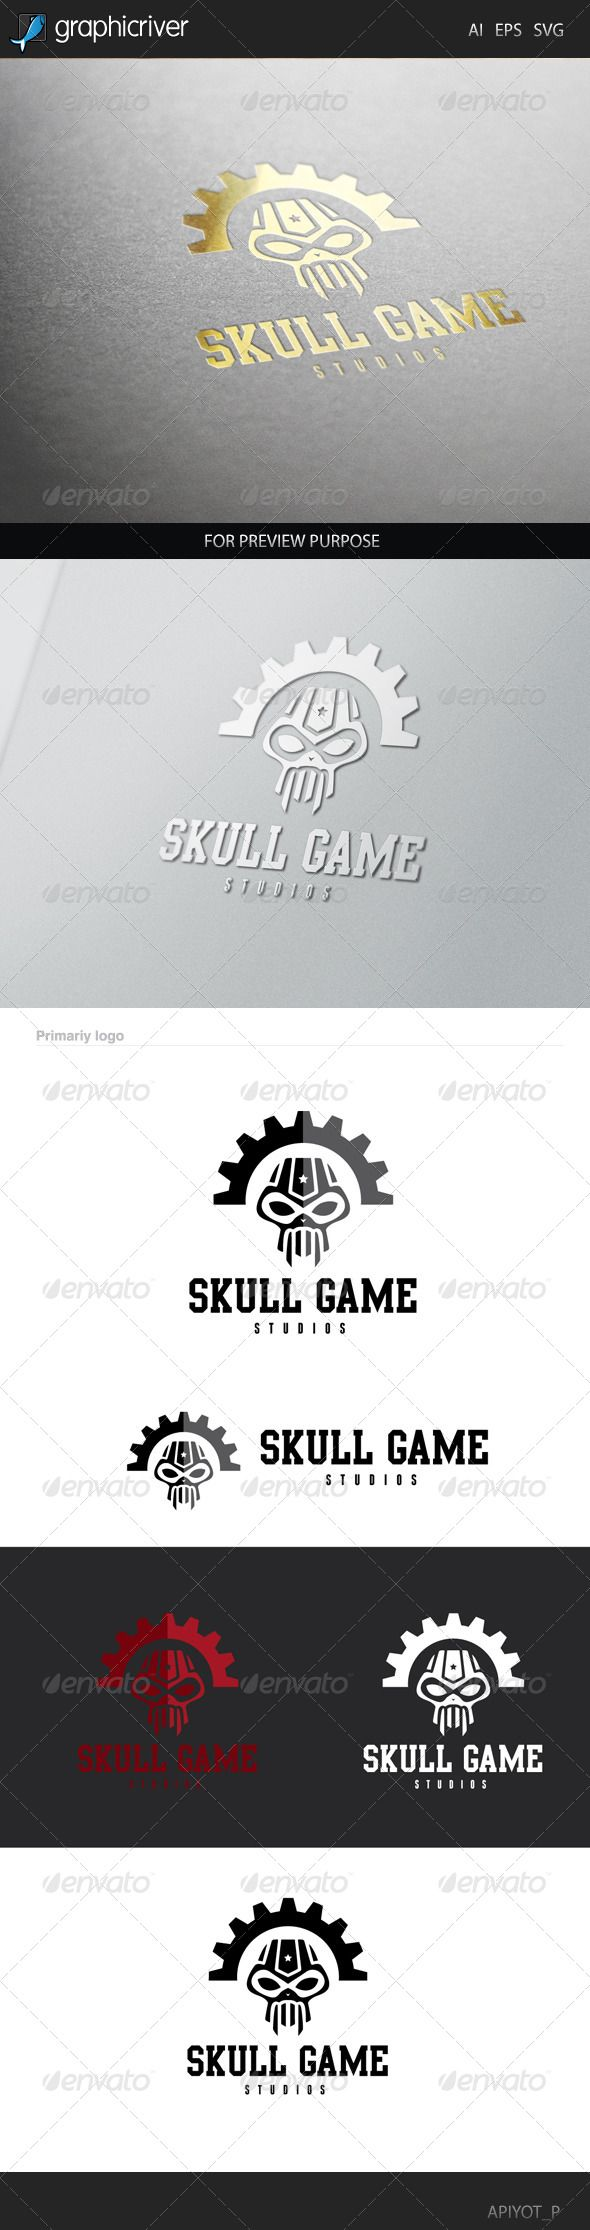 Skull Game - Logo Design Template Vector #logotype Download it here: http://graphicriver.net/item/skull-game-logo/8505926?s_rank=1073?ref=nesto